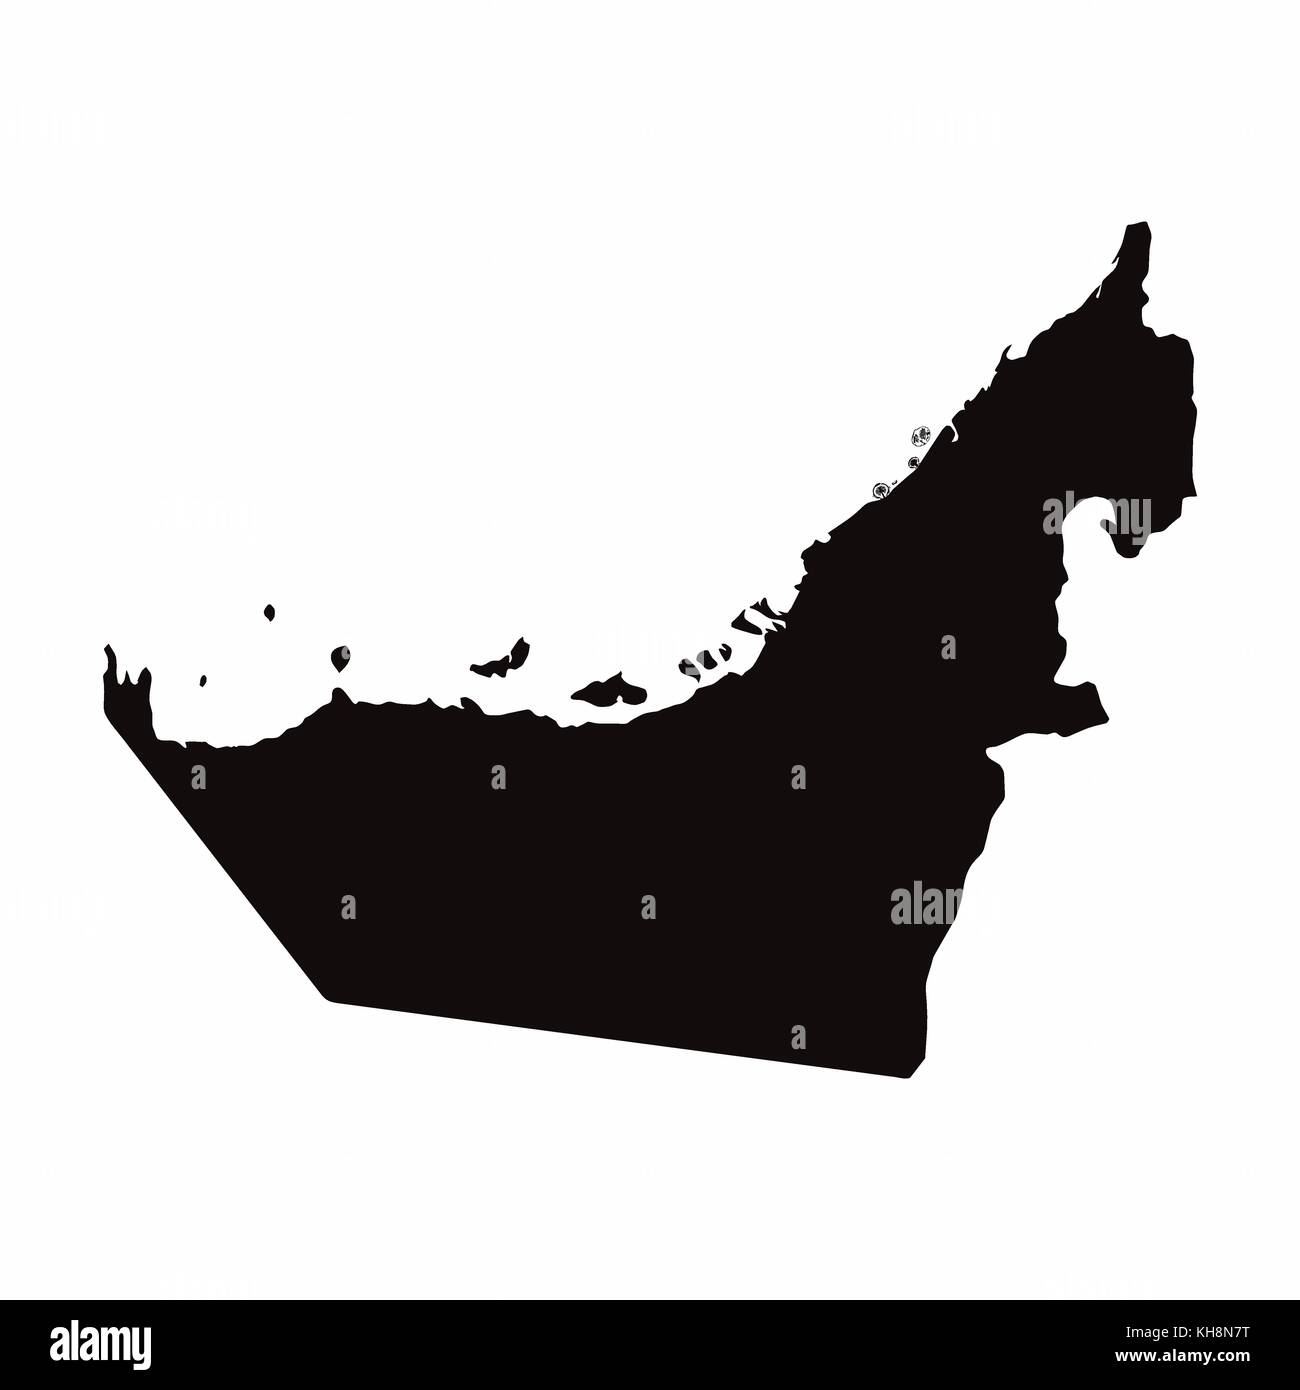 uae vector country map stock image